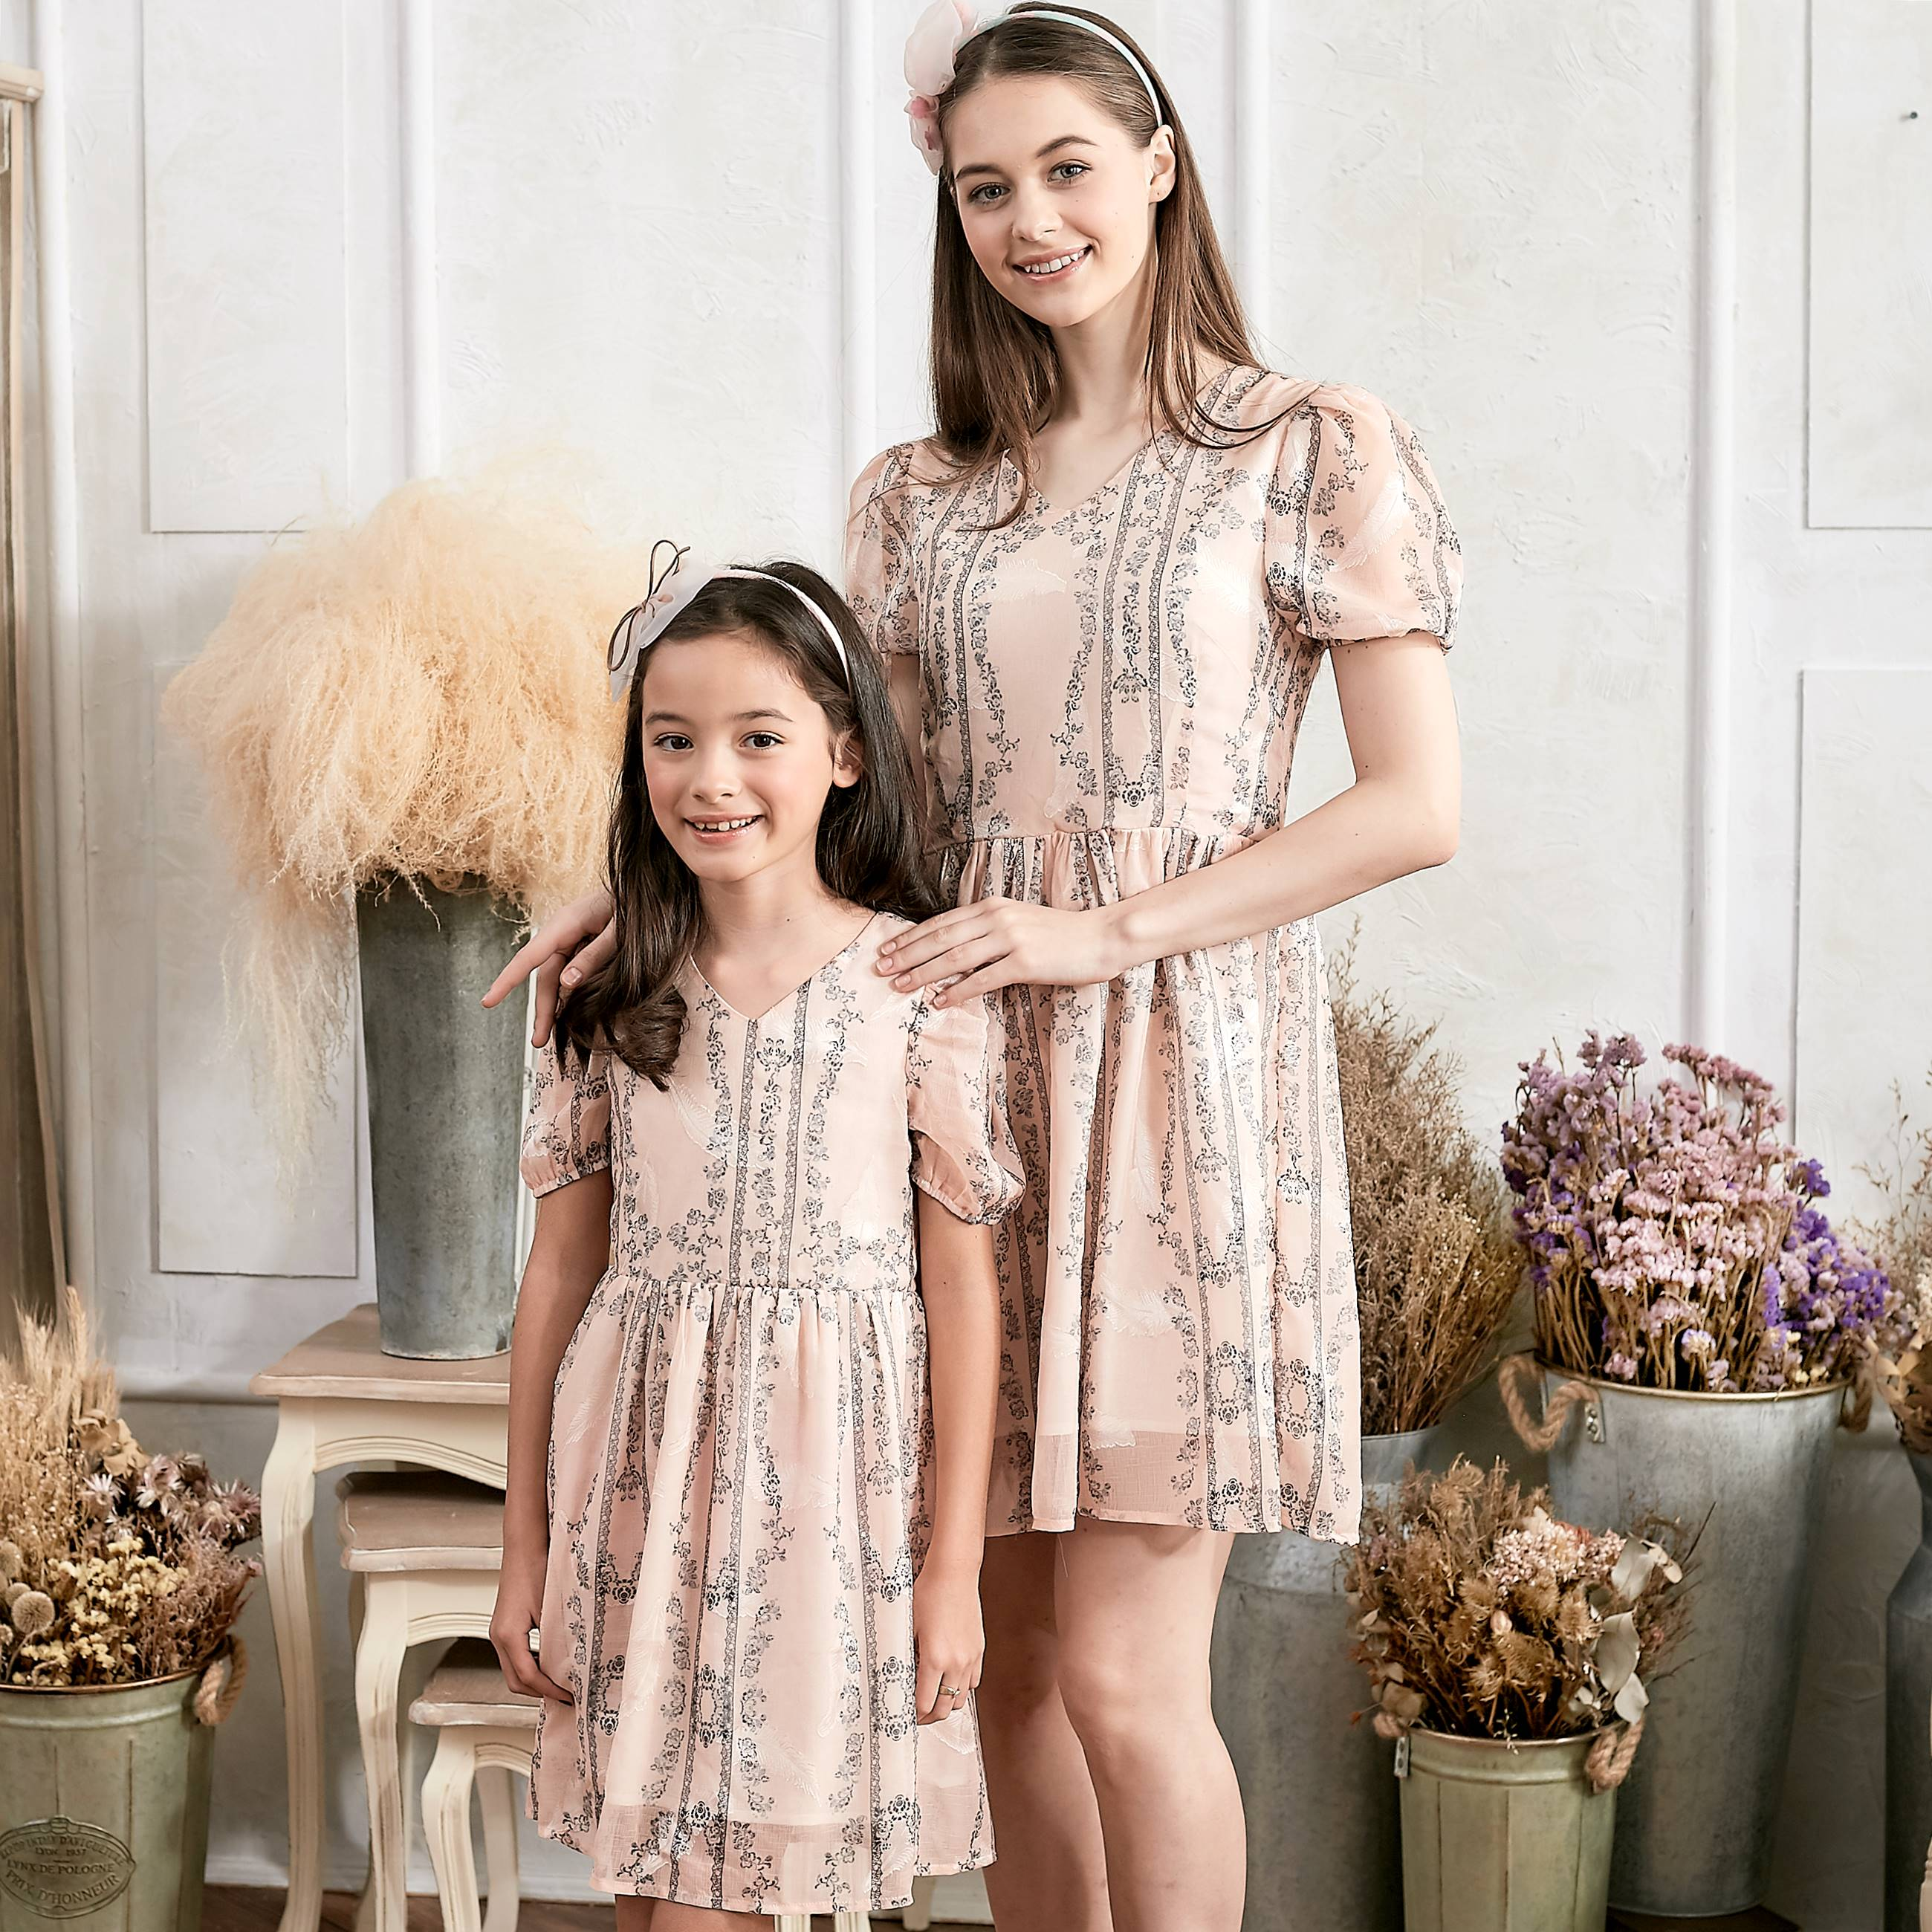 (Mommy & Me) Floral Fit & Flare Dress (set of 2) - Bunny n Bloom Mommy & Me Dress